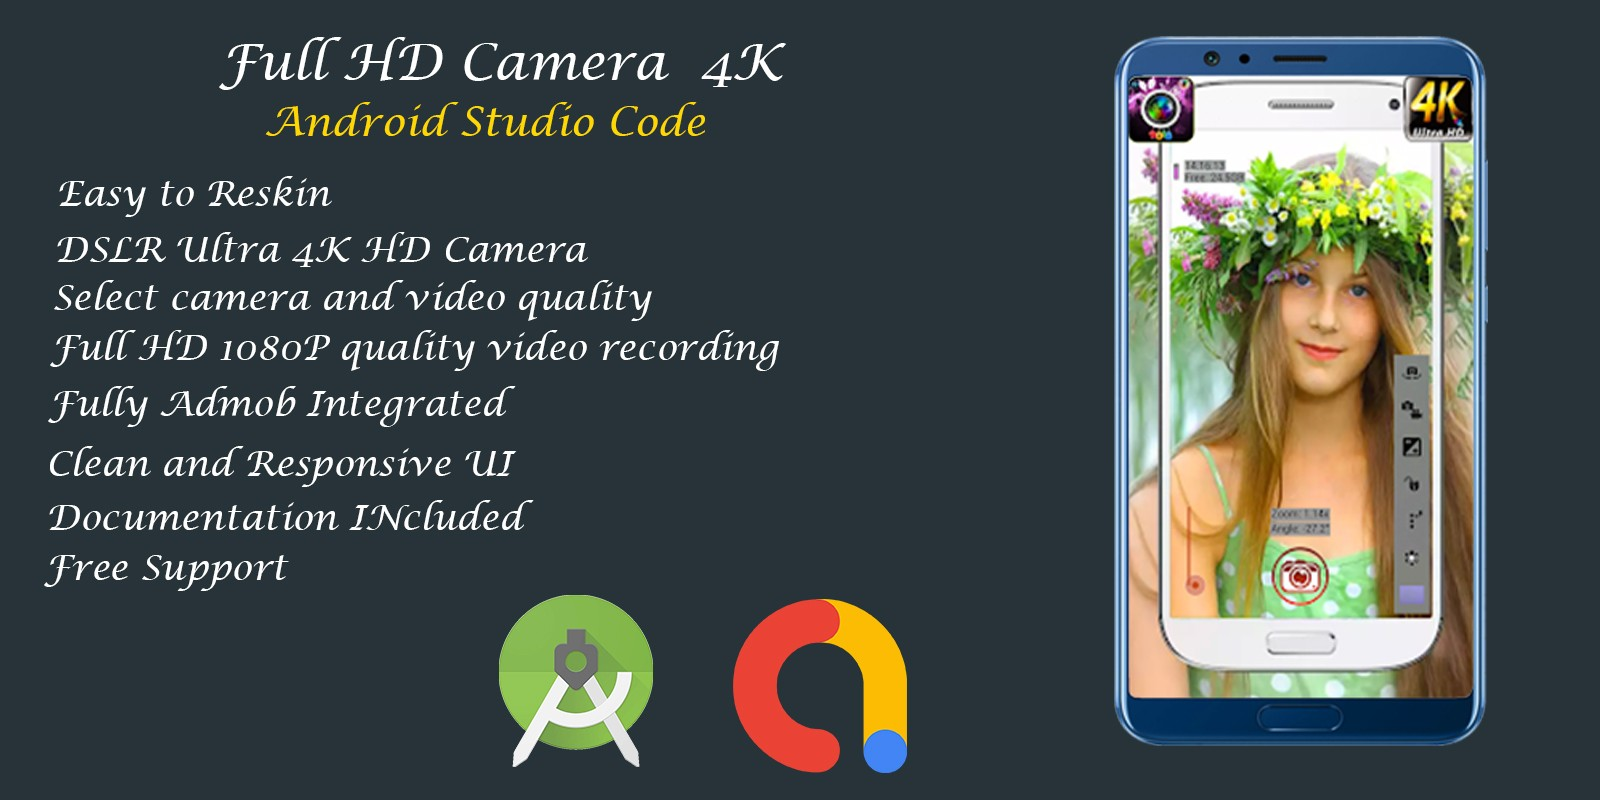 Full HD Camera 4K - Android Studio Code